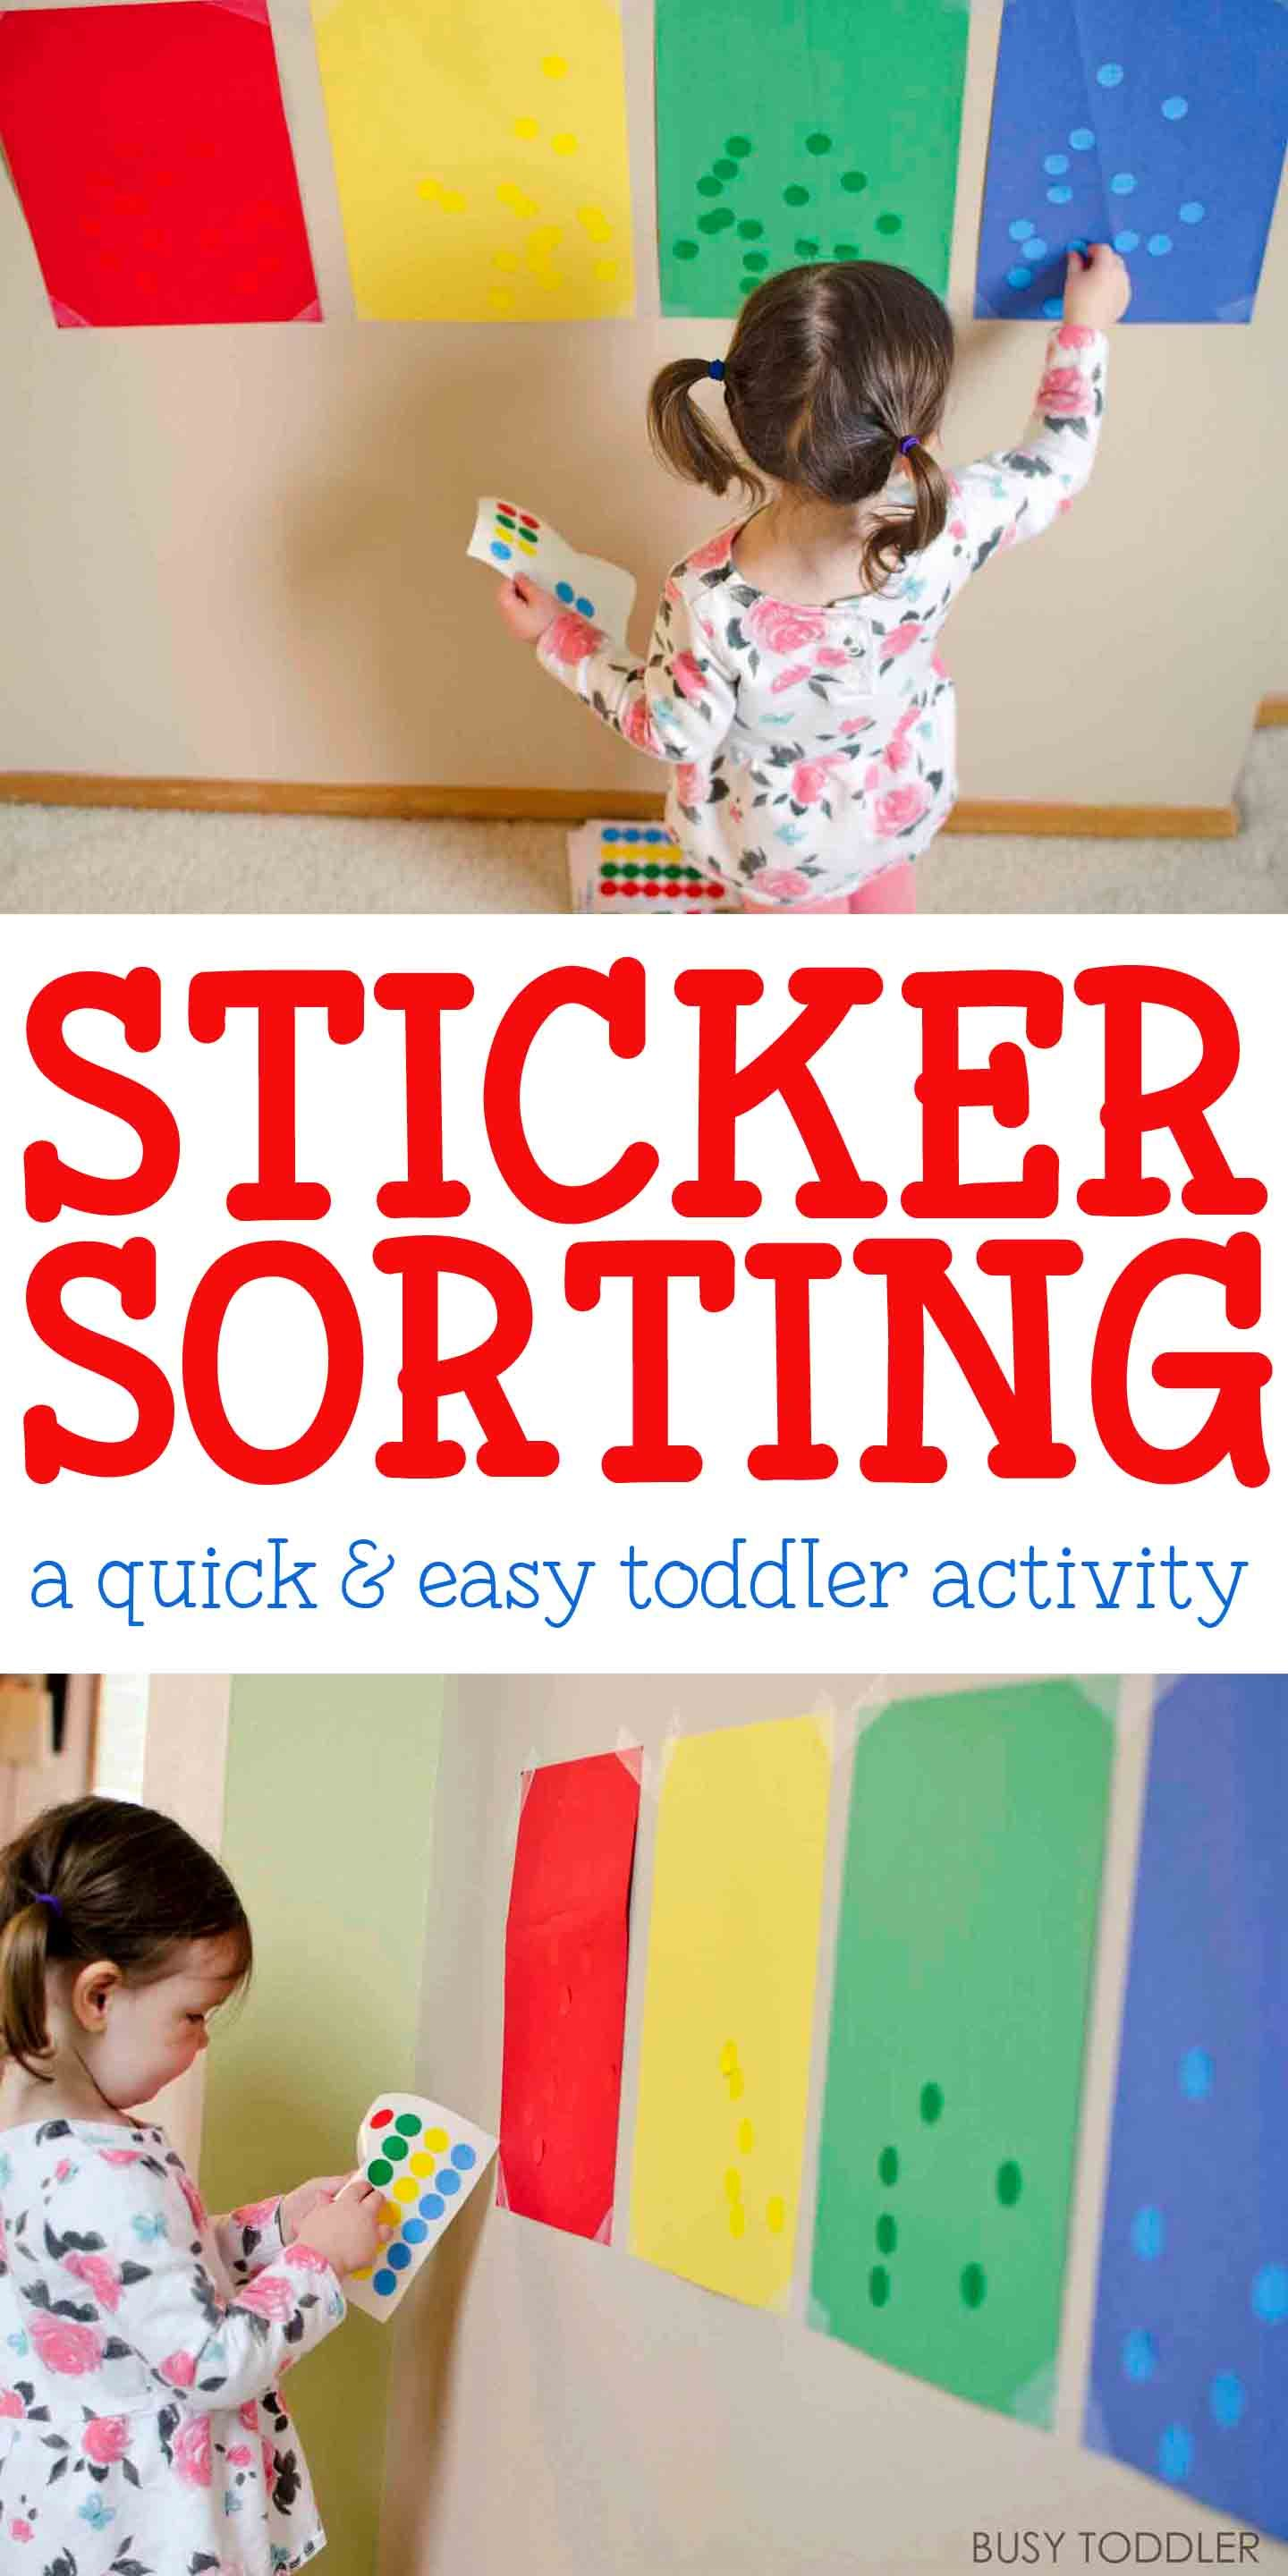 Activity Books For Toddlers Sticker Sorting Activity Busy Toddler Toddler